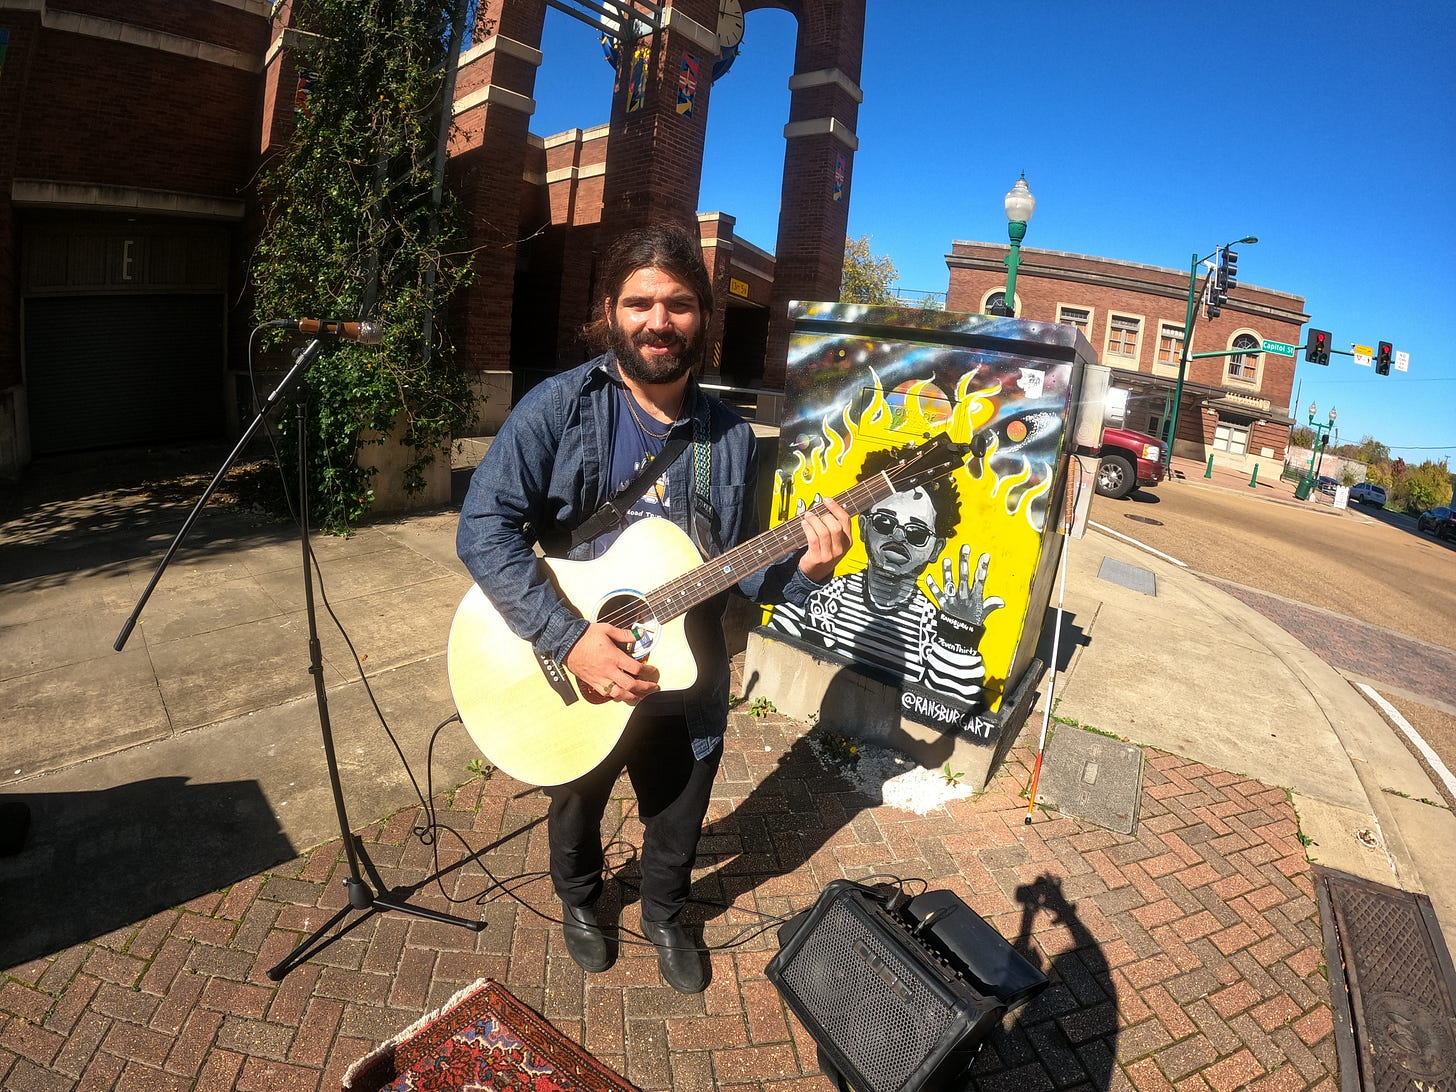 Anthony posted up on the corner getting ready to live stream to Facebook in Jackson, Mississippi a piece of art work is behind him with a guy released from jail in a yellow flame and sunglasses